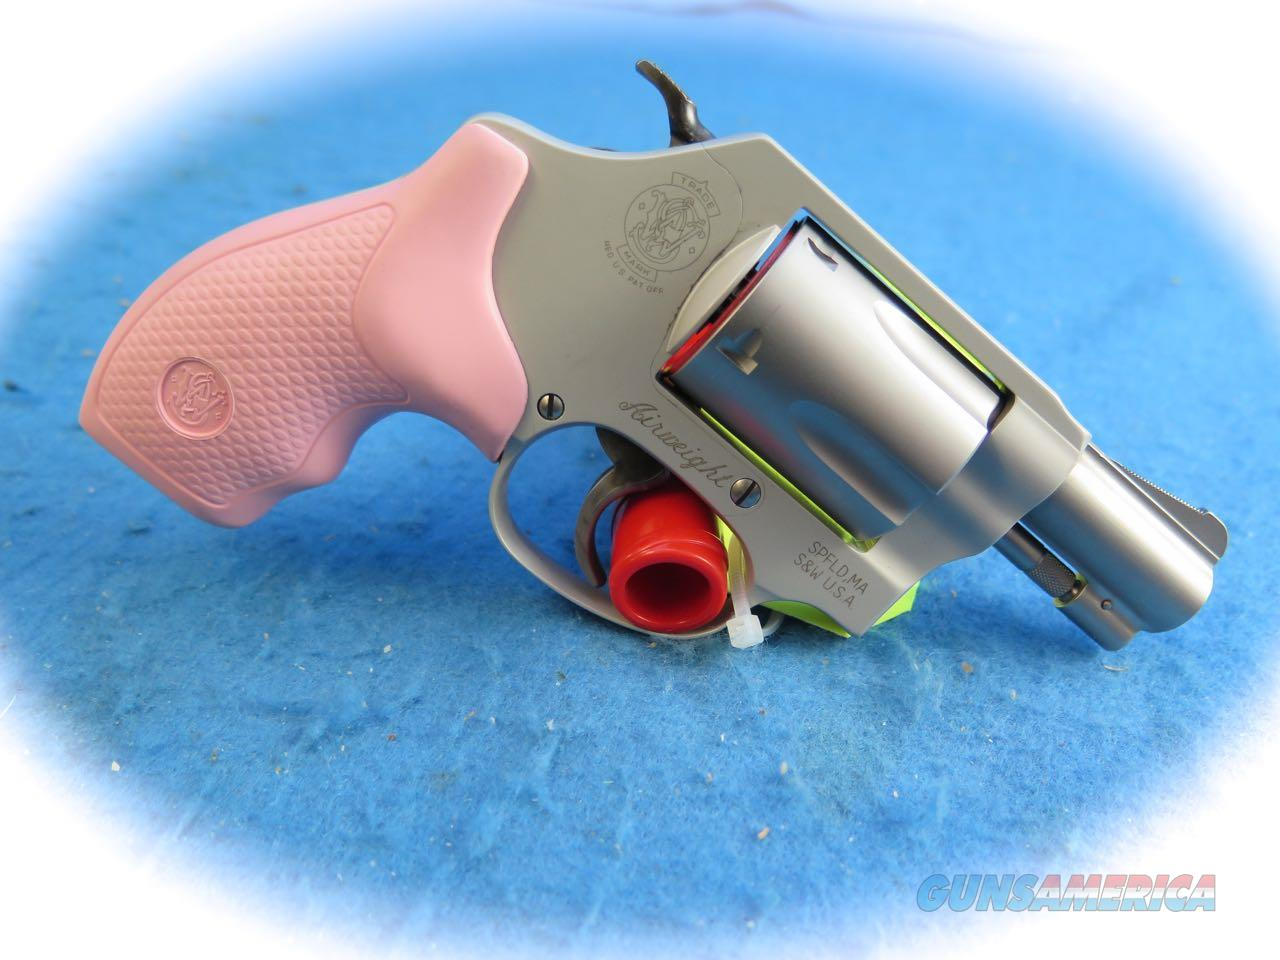 Smith & Wesson Model 637 .38 Spl +P Airweight Revolver W/Pink Grips **New**  Guns > Pistols > Smith & Wesson Revolvers > Small Frame ( J )